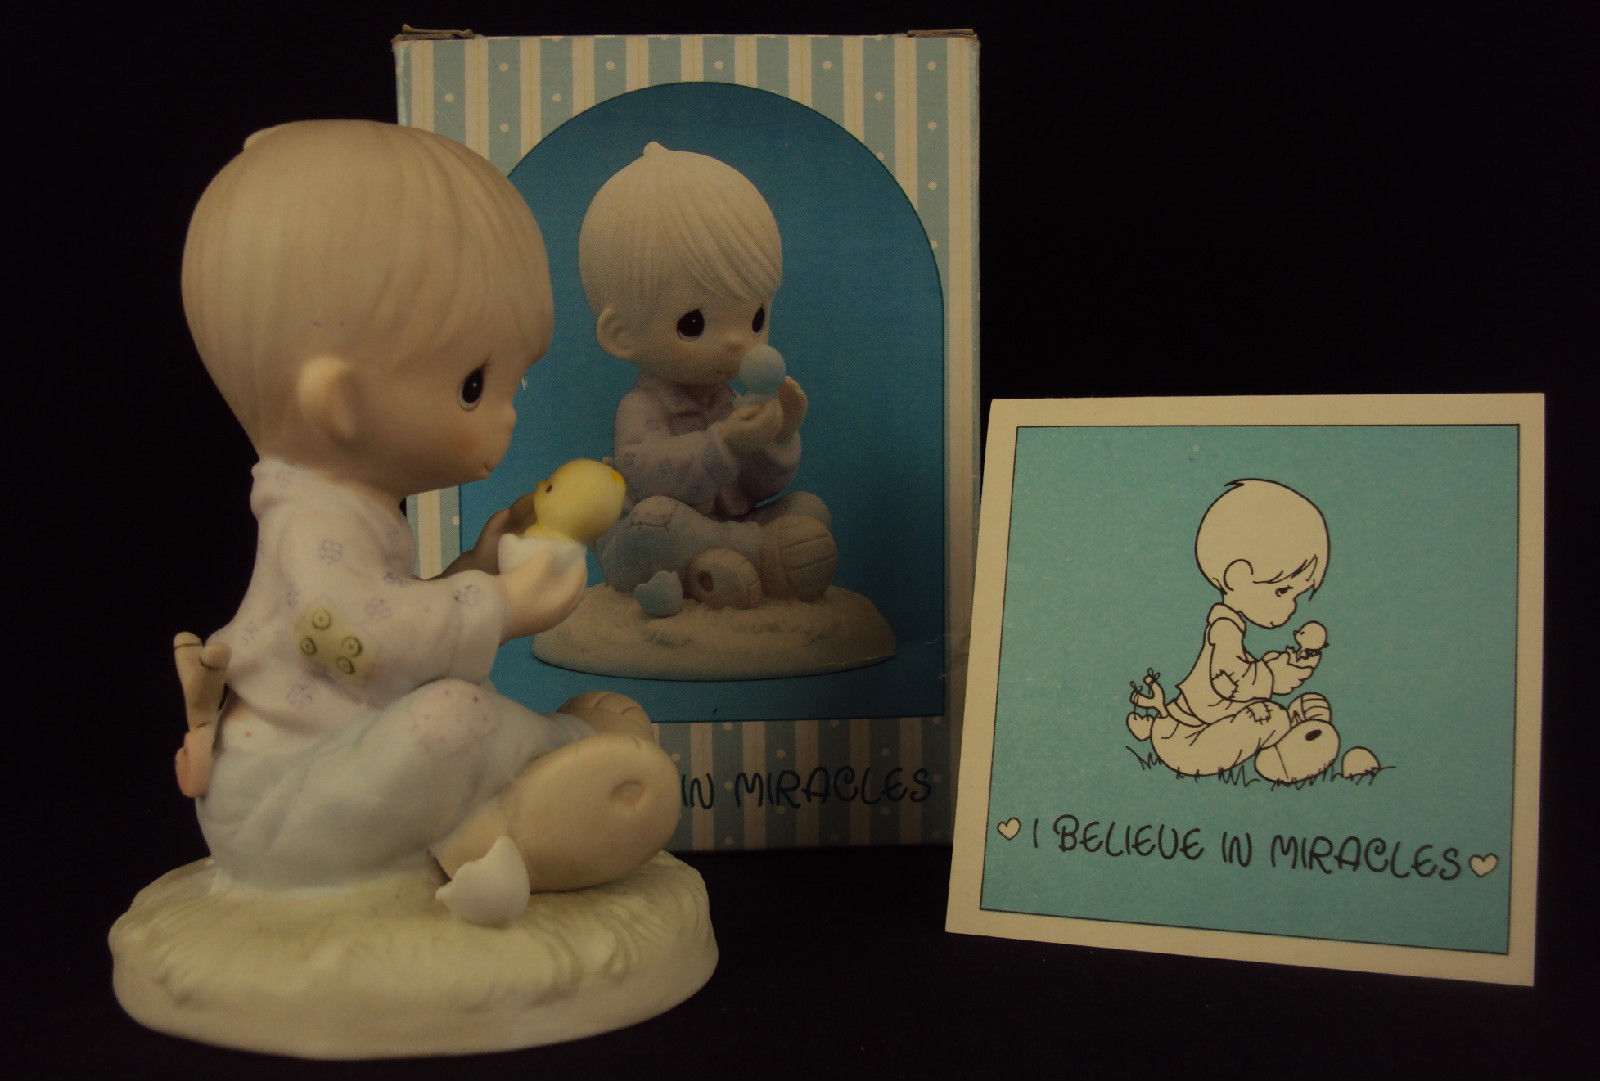 Primary image for Precious Moments Figurine, #E-7156, I Believe In Miracles, Hourglass Mark, 1981